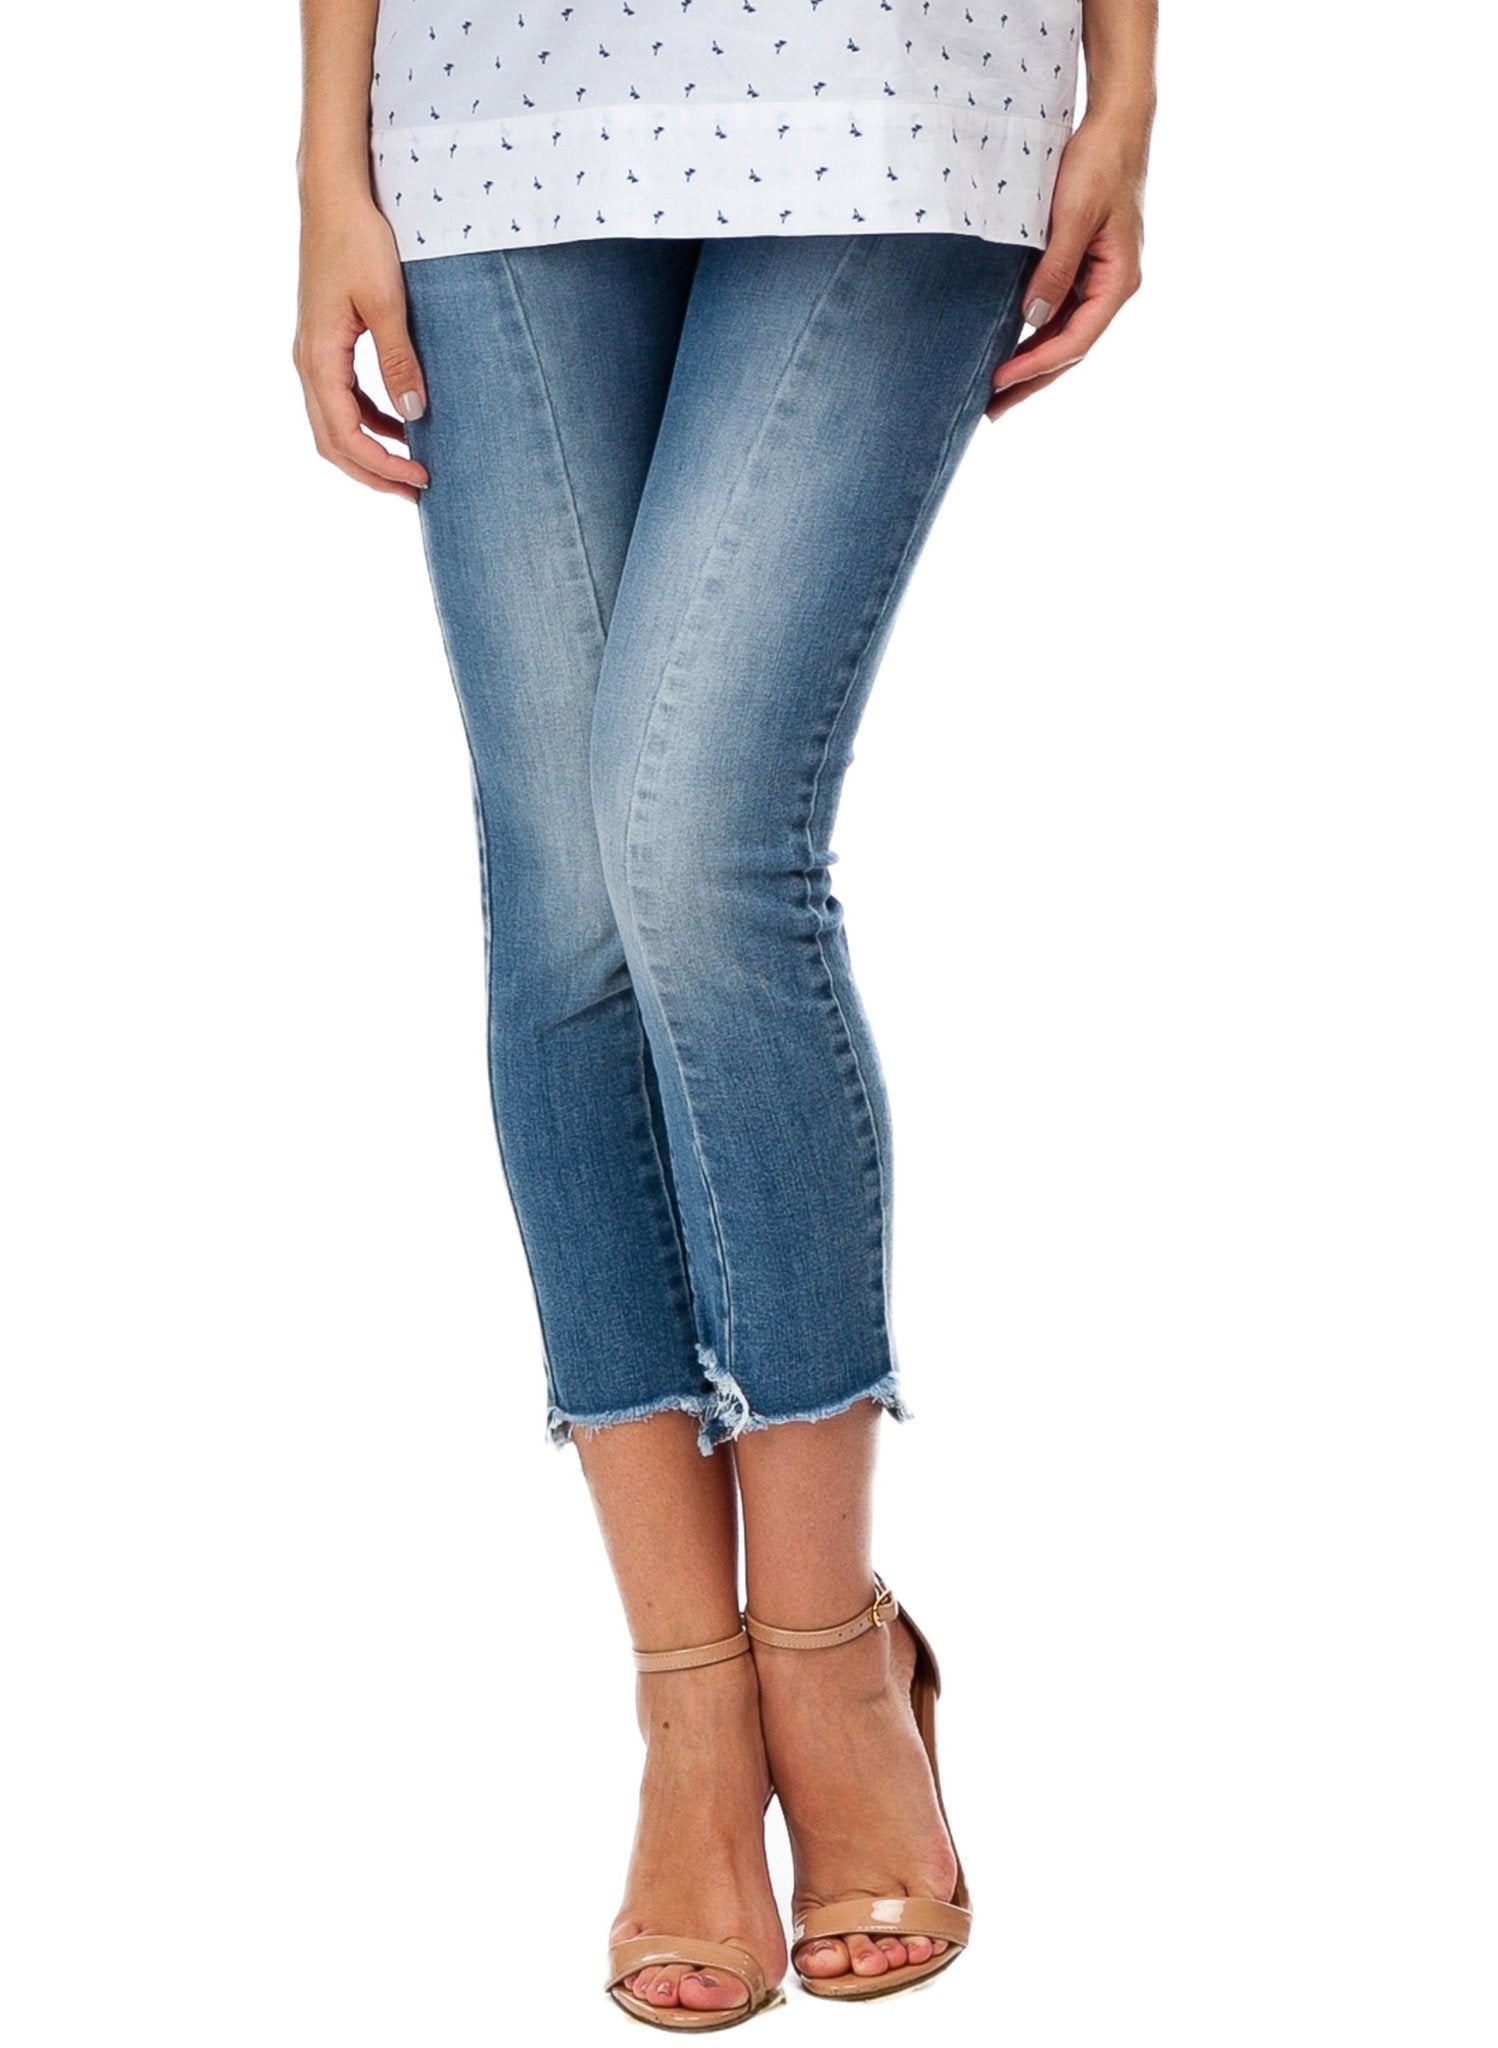 Barrett Maternity Jeans - Mums and Bumps